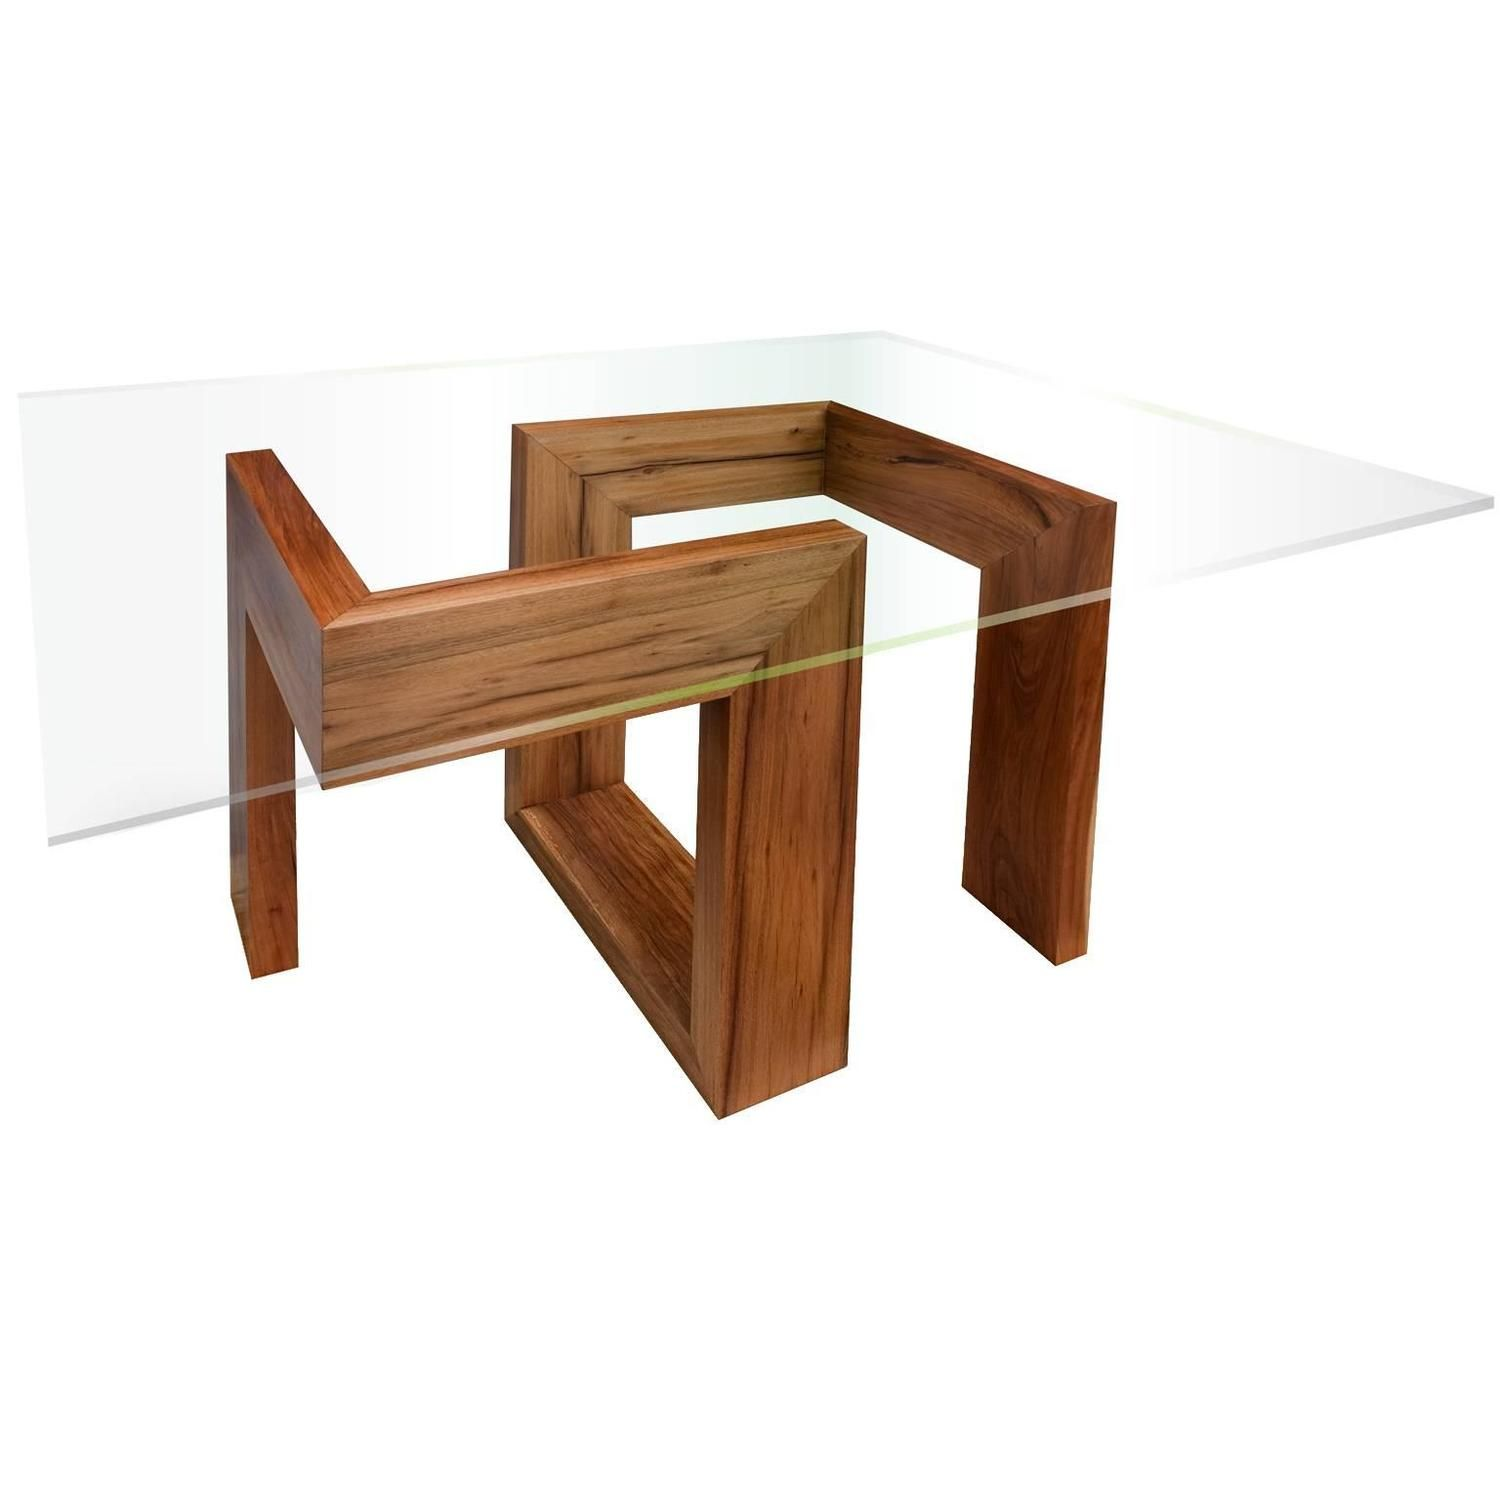 modern 21st century solid timber table with glass top on extraordinary creative wooden furniture design id=39512